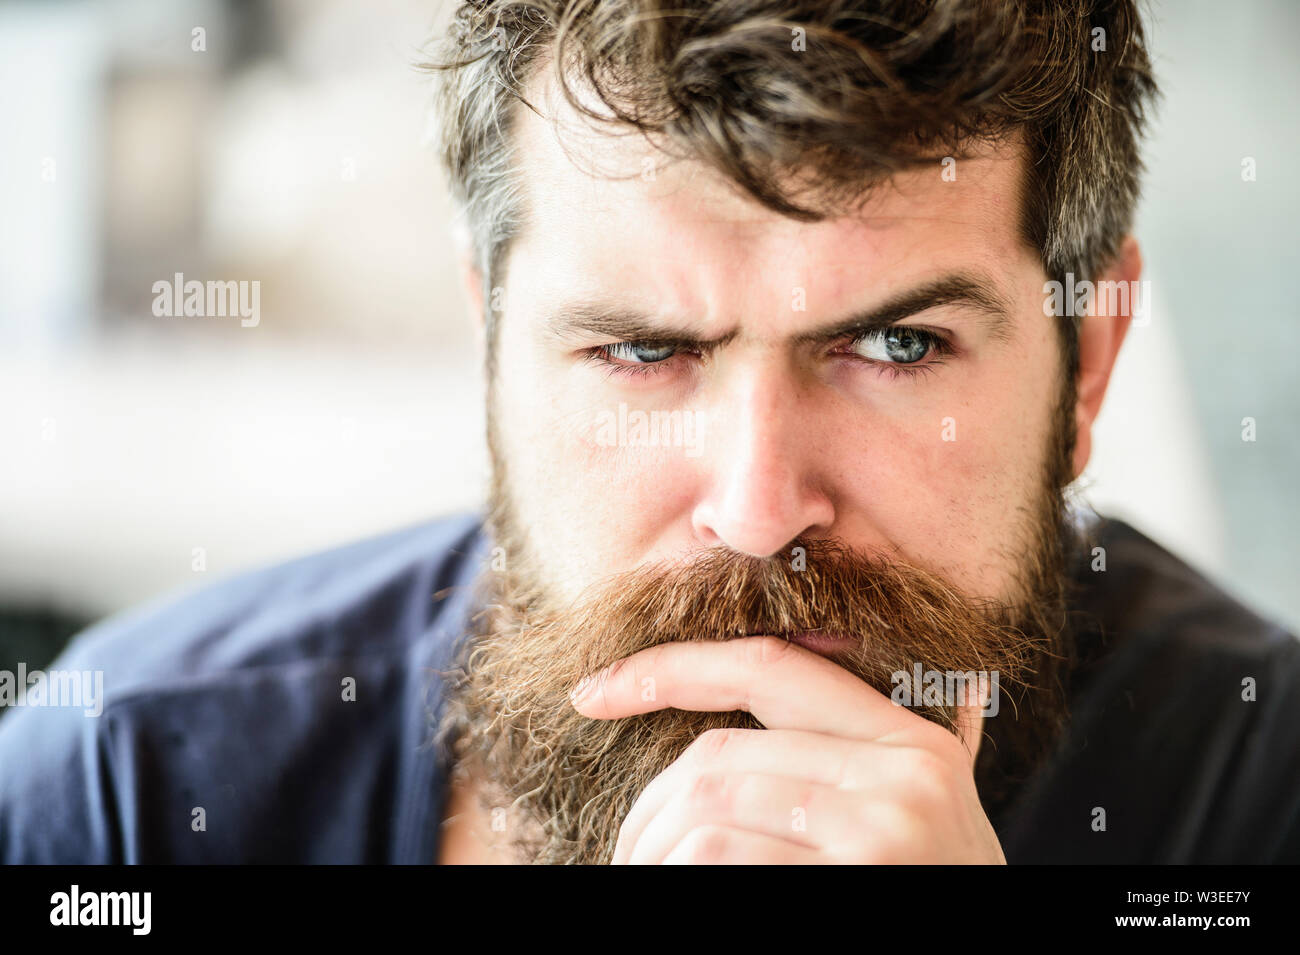 Making hard decision. Man with beard and mustache thoughtful troubled. Bearded man concentrated face. Hipster with beard thoughtful expression. Thoughtful mood concept. Making important life choices. - Stock Image